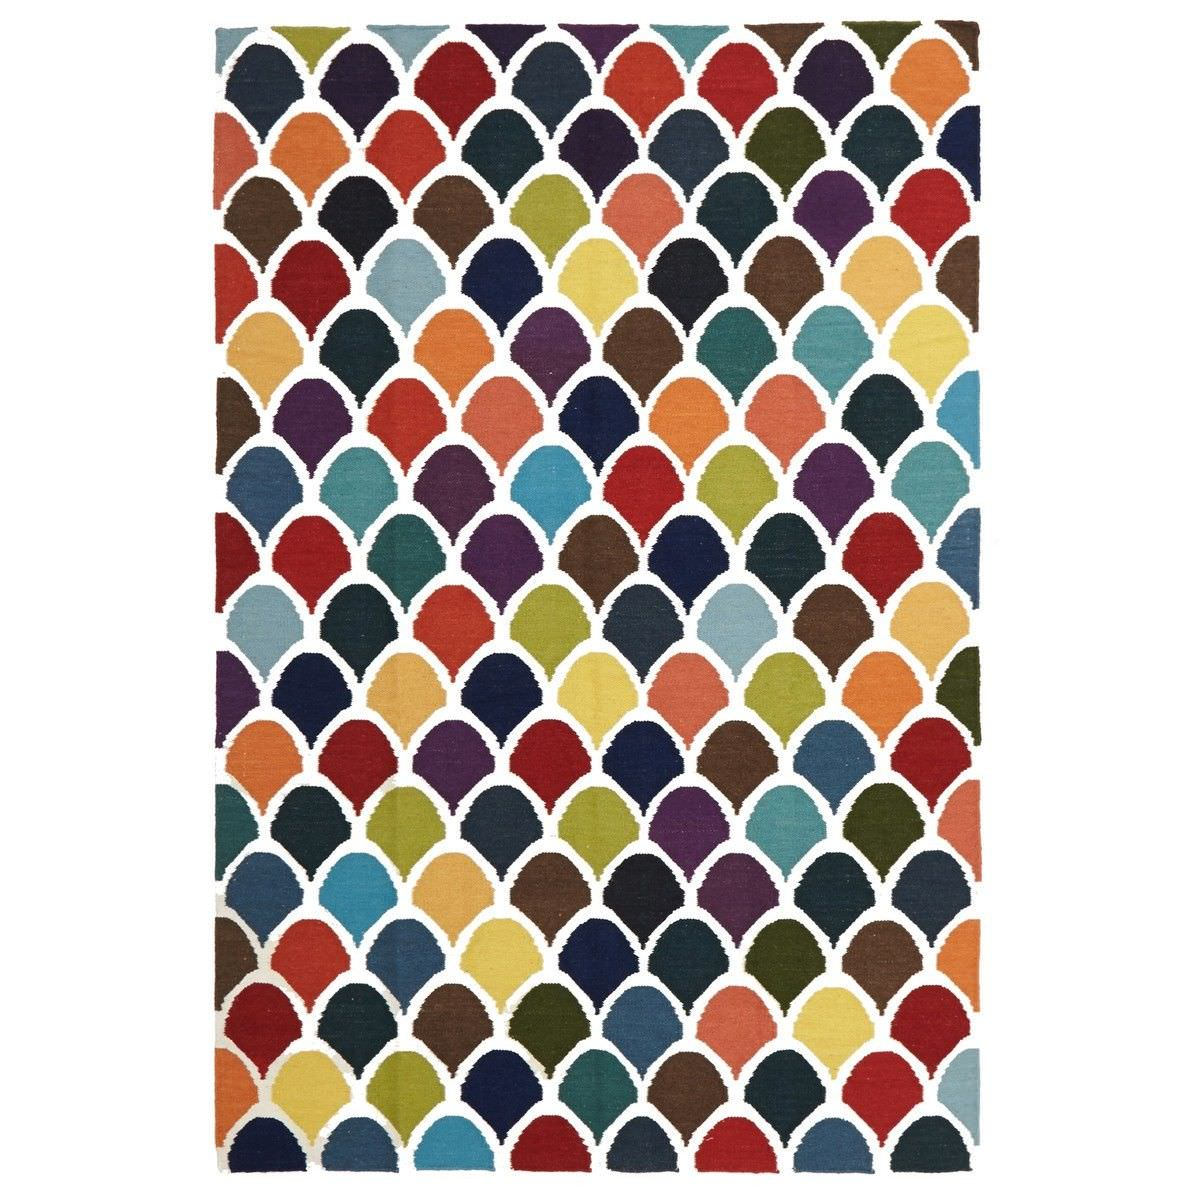 Nomad Scales Flat Woven Wool Rug, 280x190cm, Multi